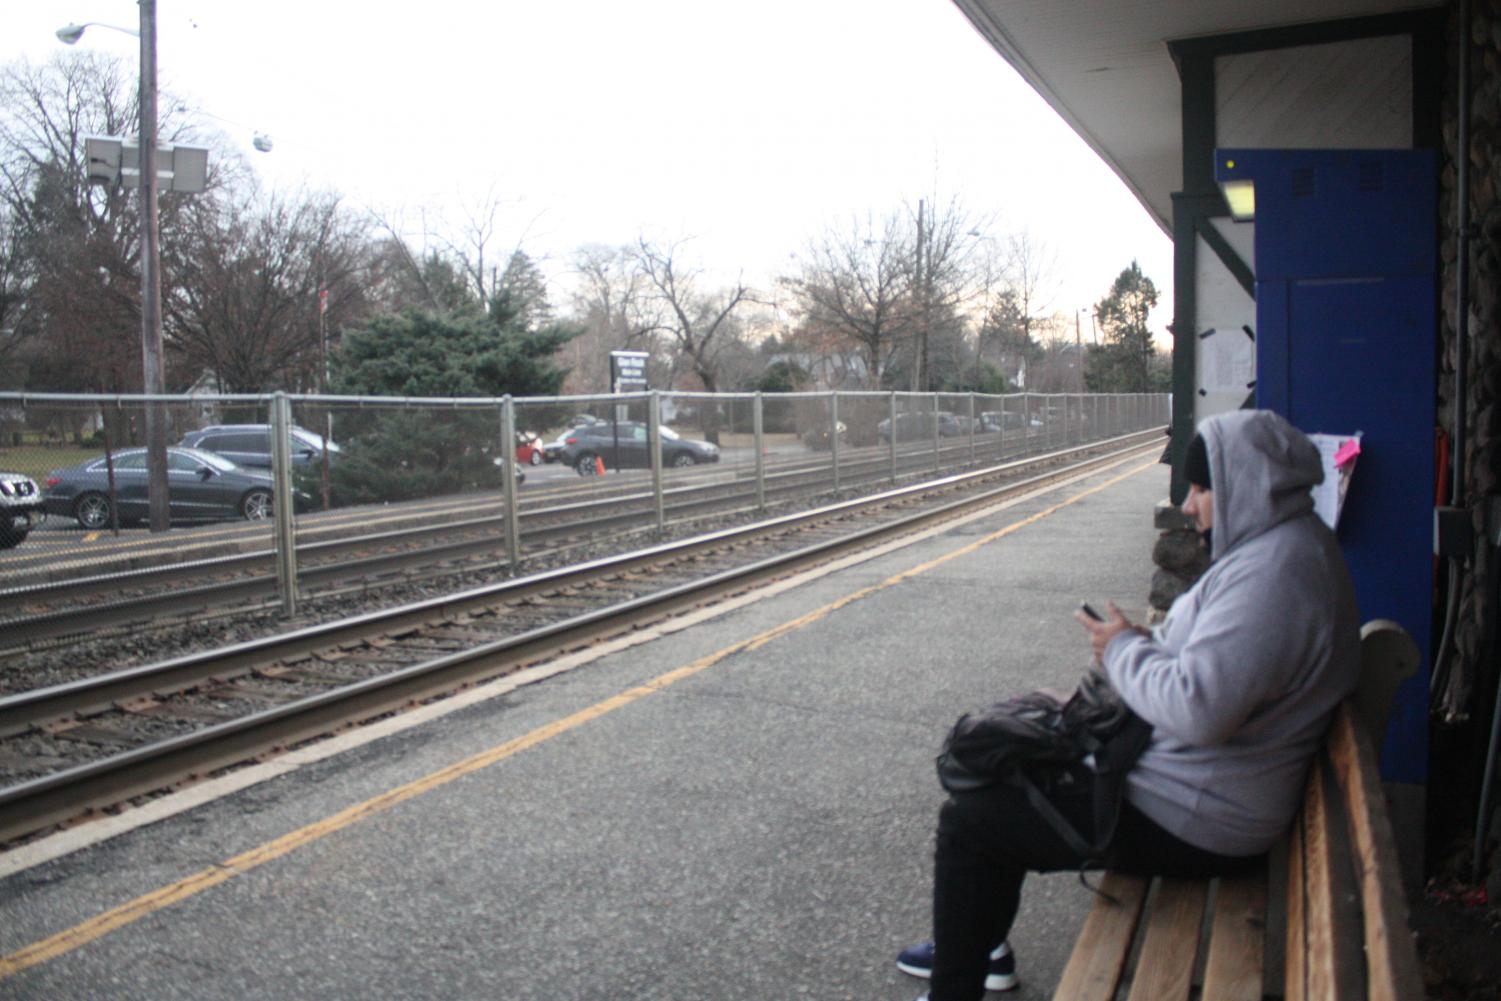 A+man+waits+on+a+bench+for+the+1220+train+heading+to+New+York%2FHoboken+at+3%3A30+p.m.%0A